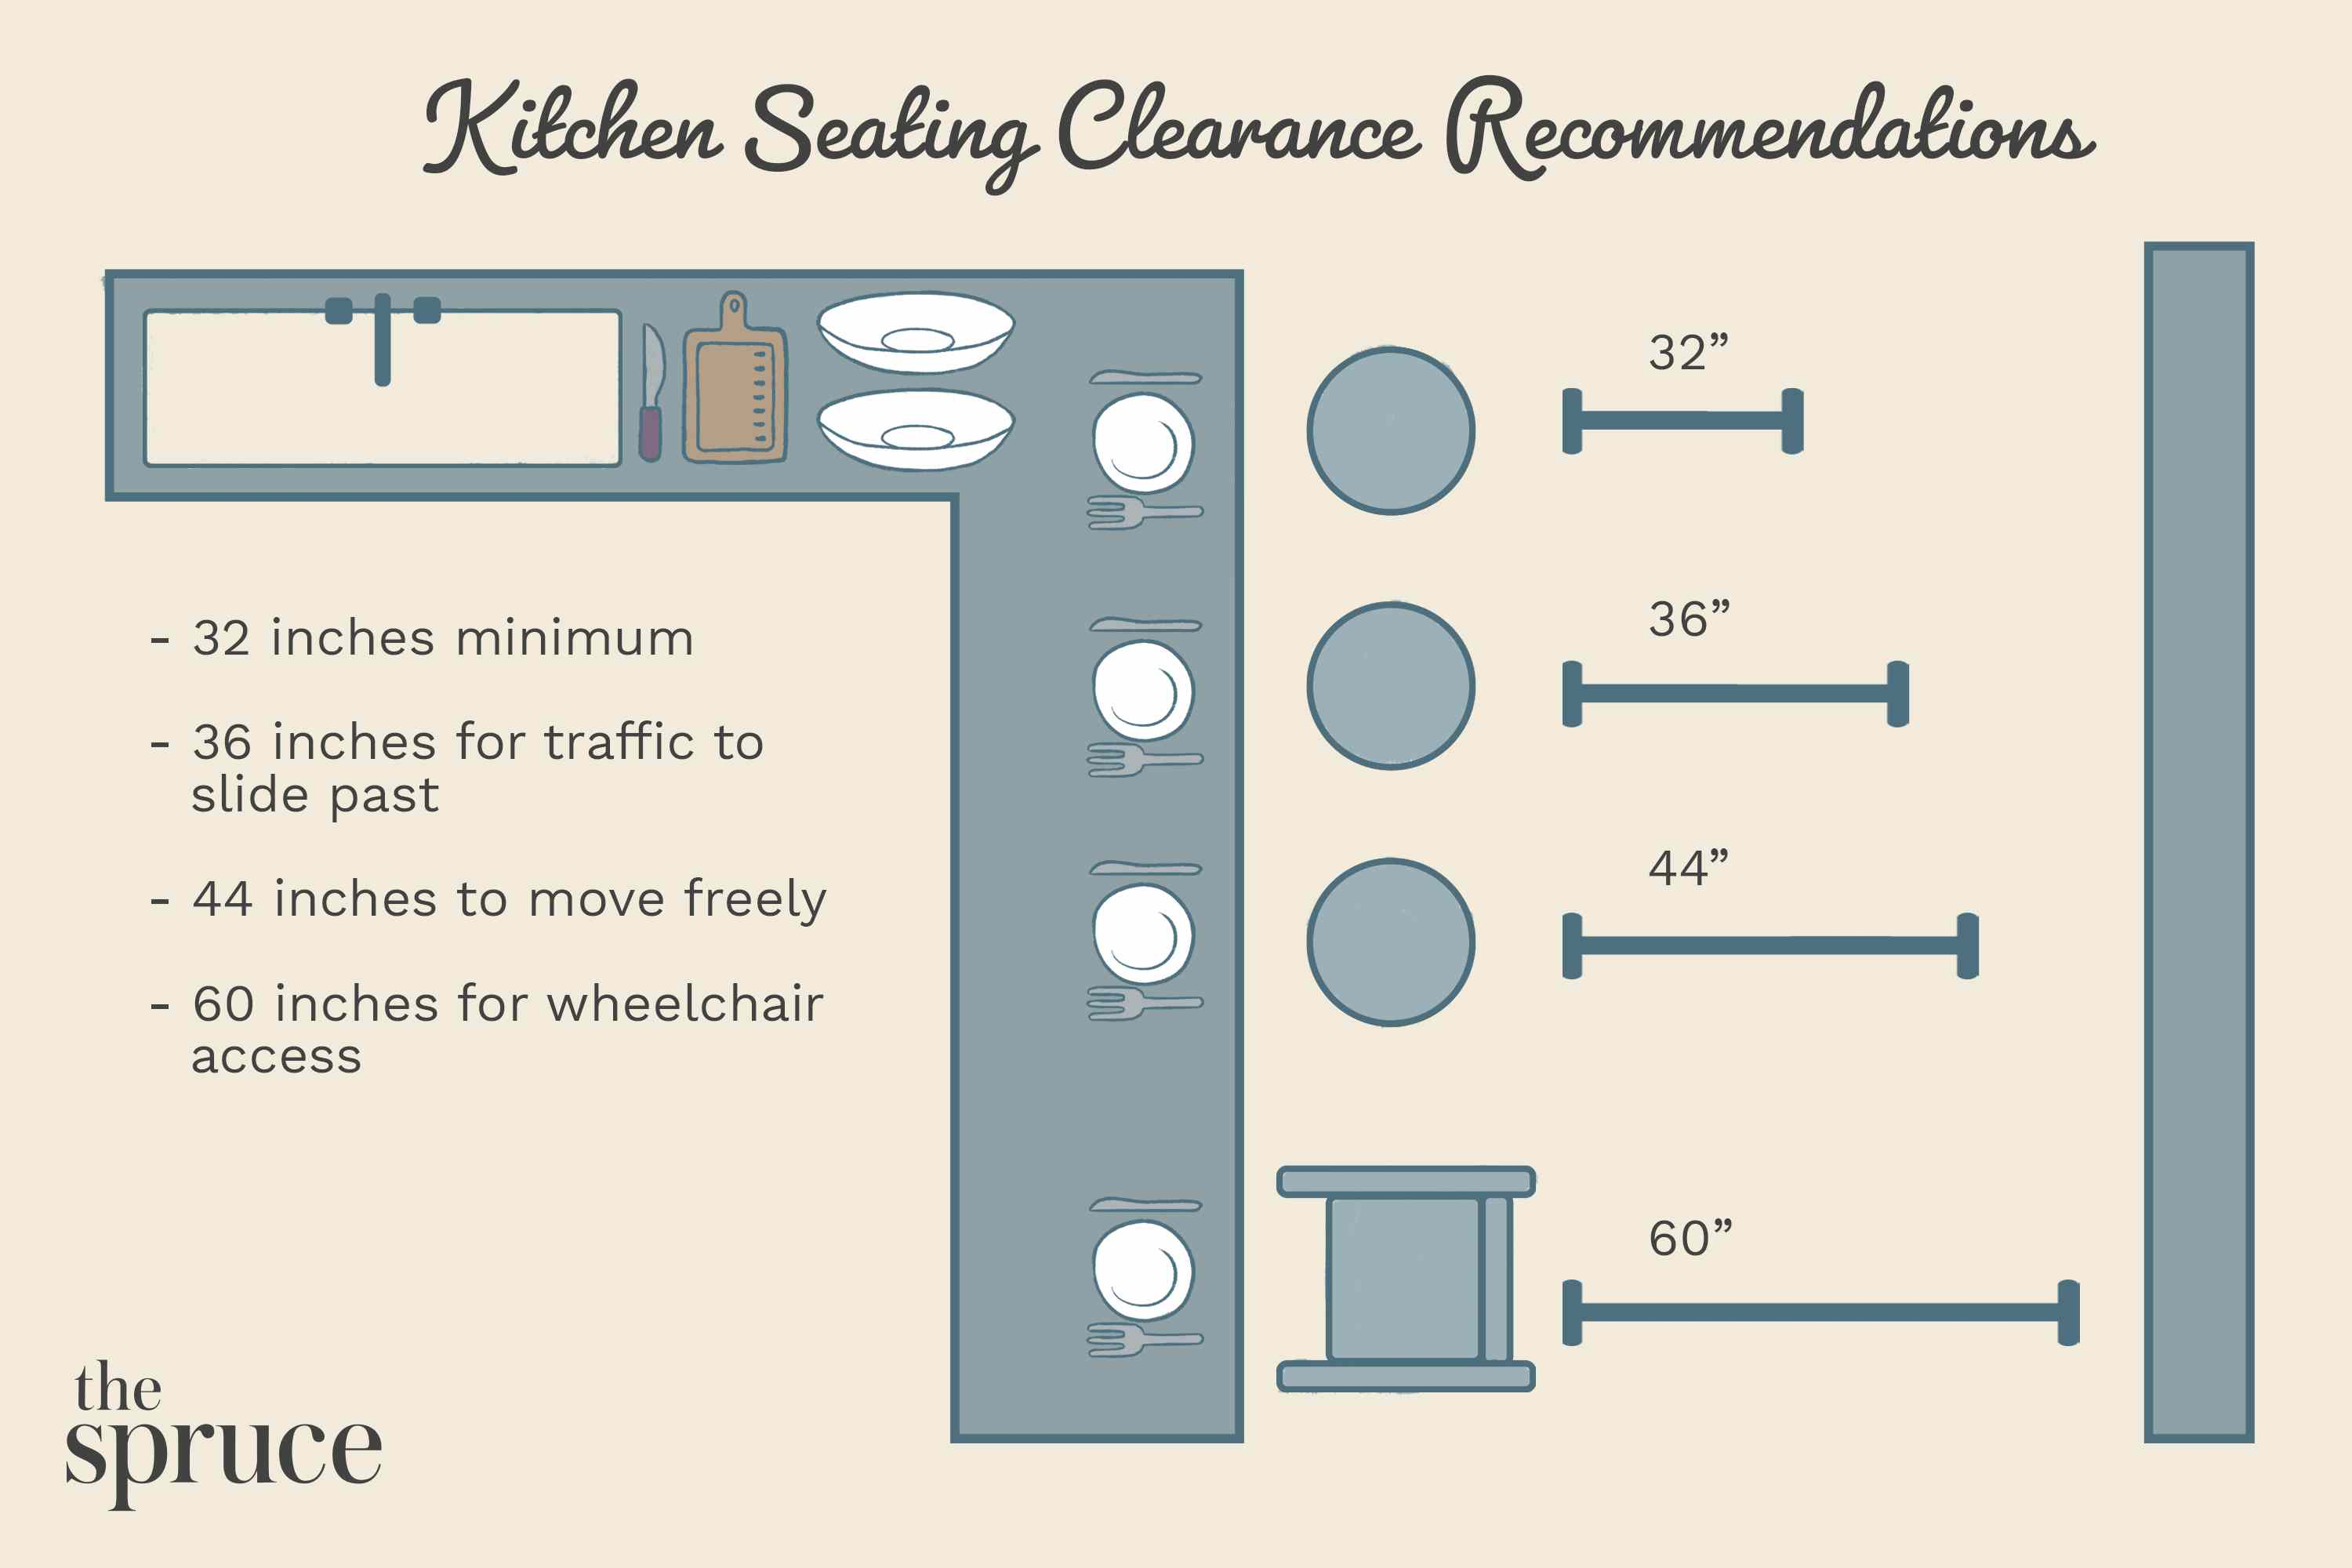 Kitchen Seating Clearance Recommendations